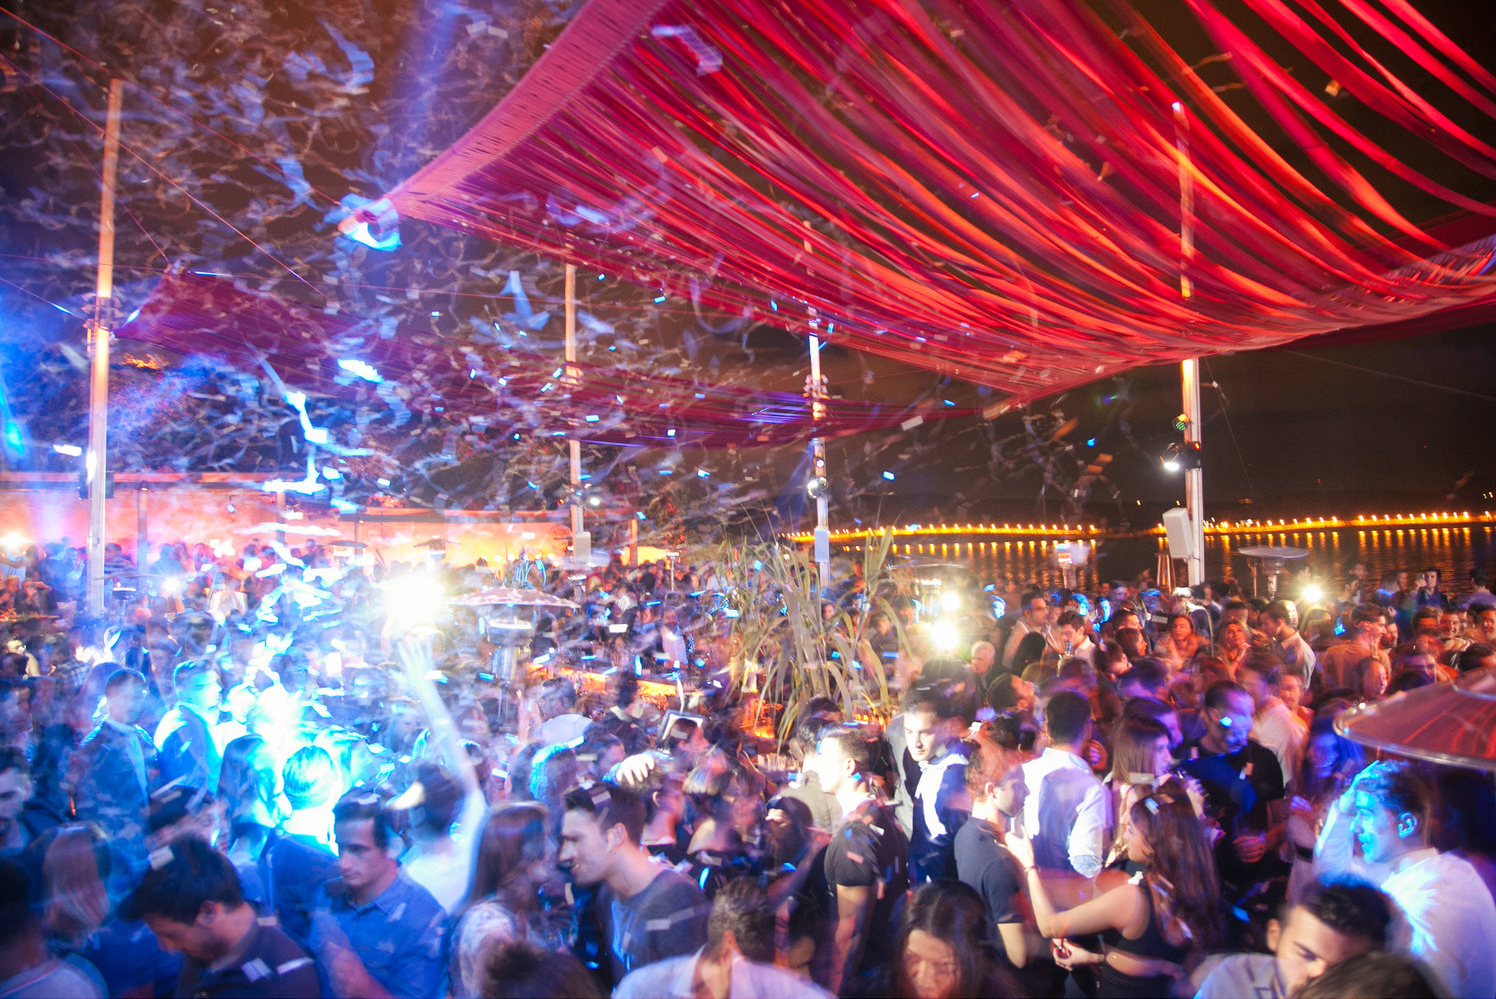 Island-ers partying in the Athens Riviera (Picture by Island Club Restaurant)